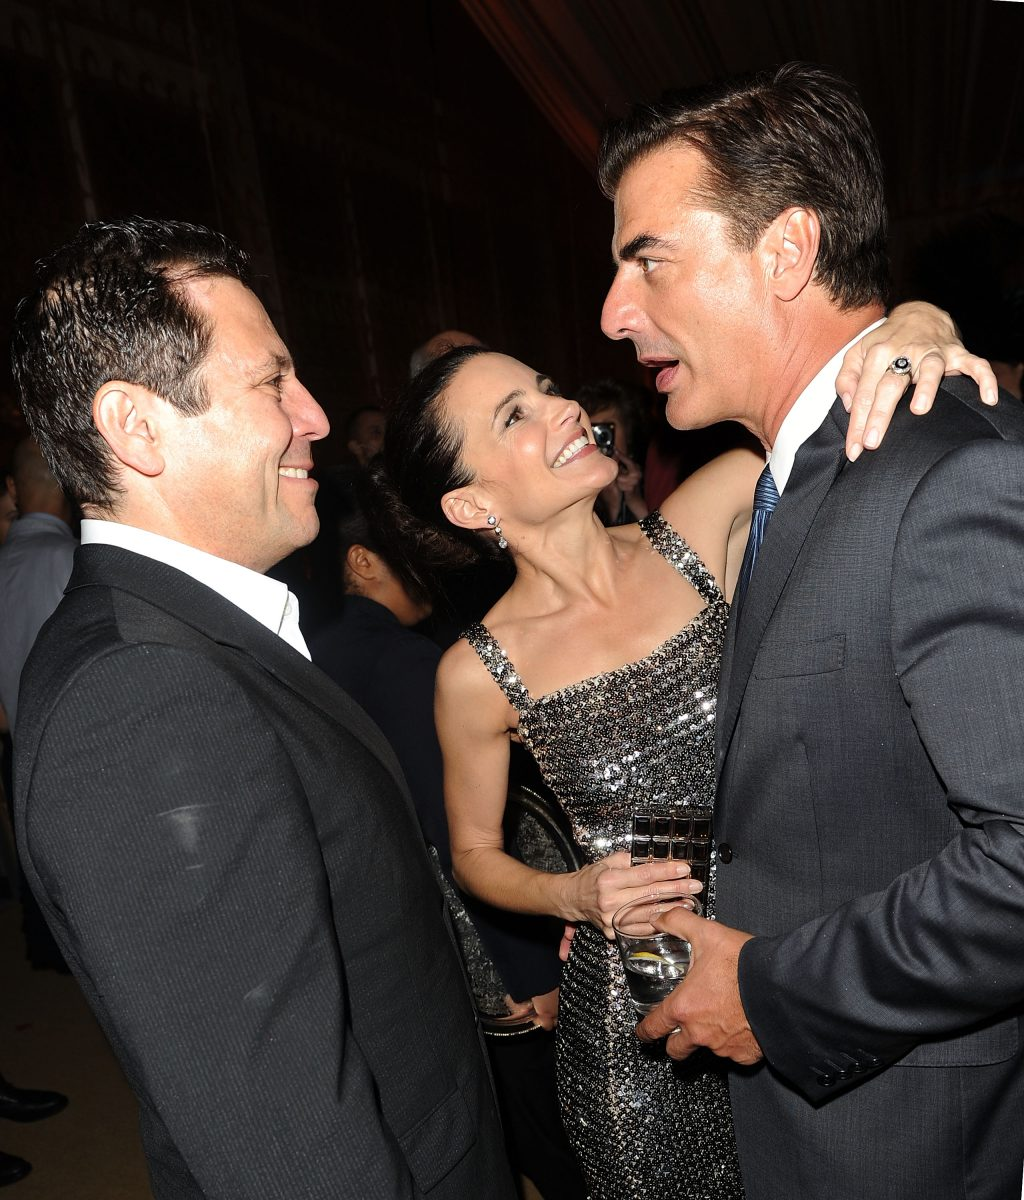 Darren Star, Kristin Davis, and Chris Noth attend the after party following the premiere of 'Sex and the City 2' at Lincoln Center for the Performing Arts